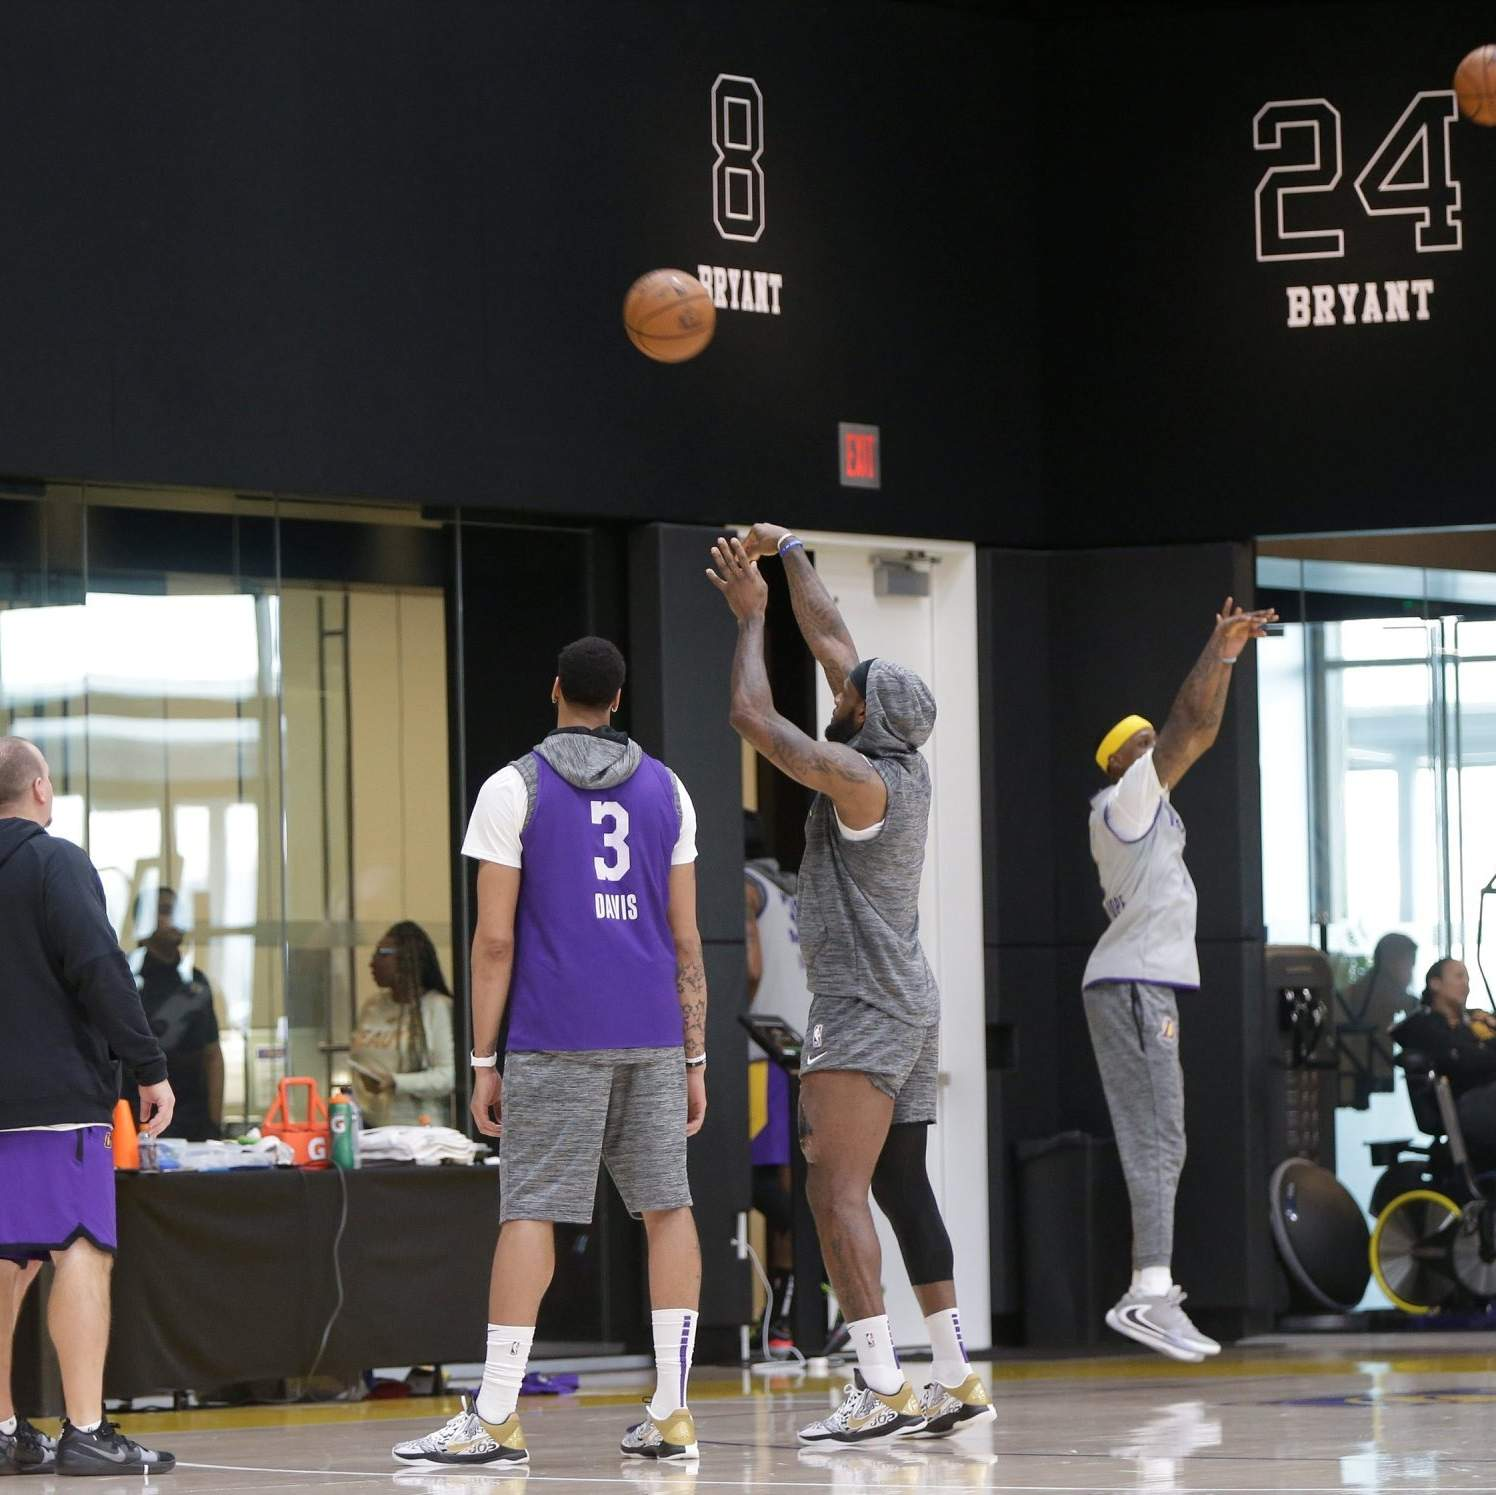 Lakers Play Outside To Lighten Spirits